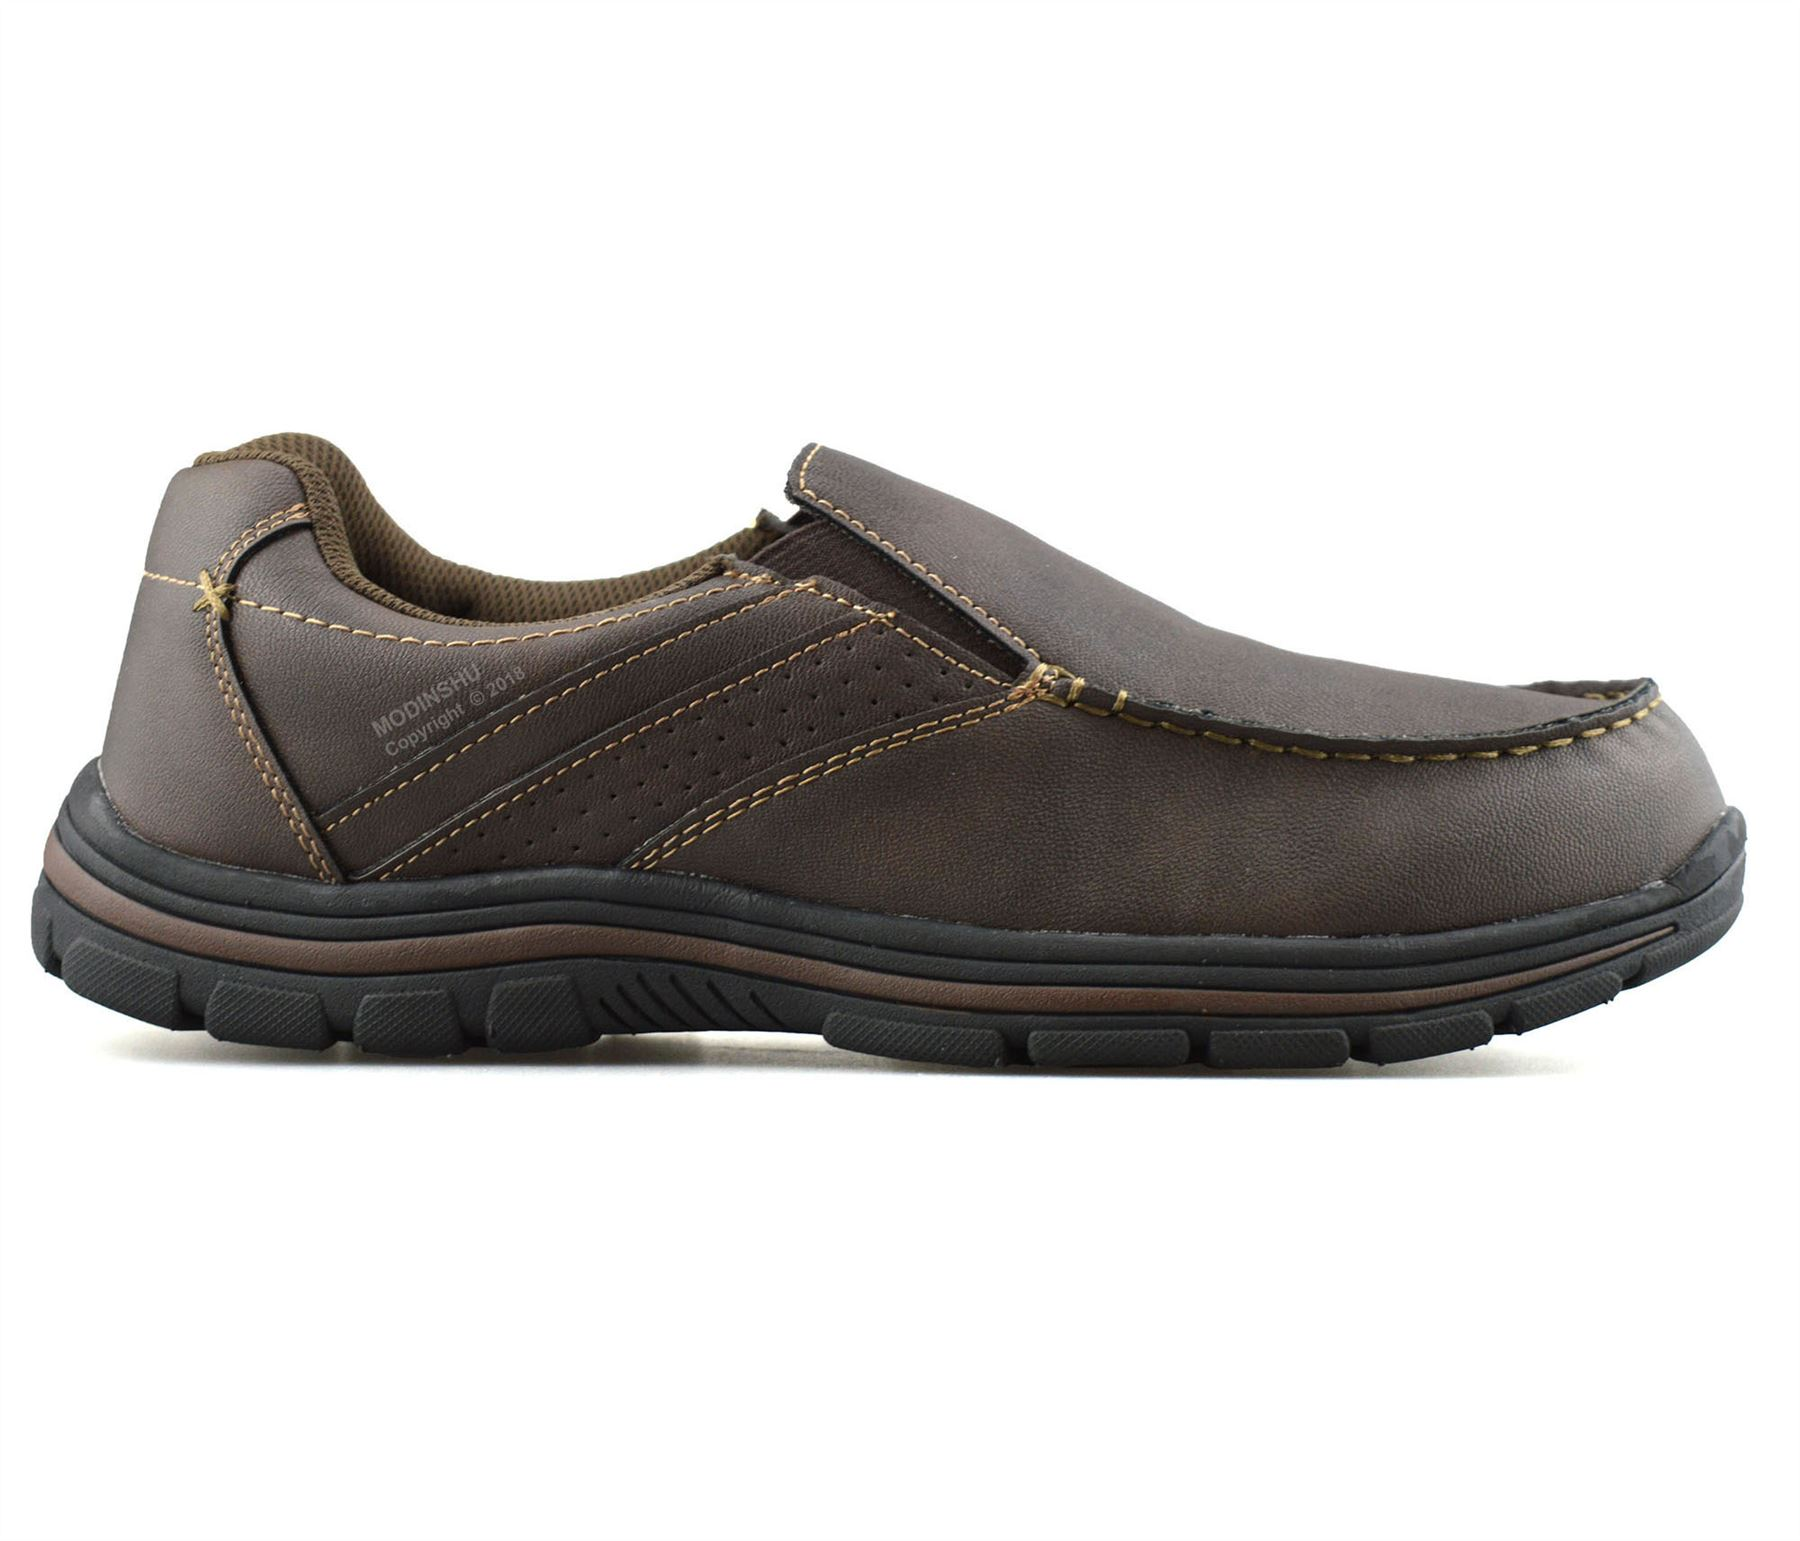 Mens-Casual-Memory-Foam-Slip-On-Walking-Moccasin-Loafers-Driving-Boat-Shoes-Size thumbnail 19